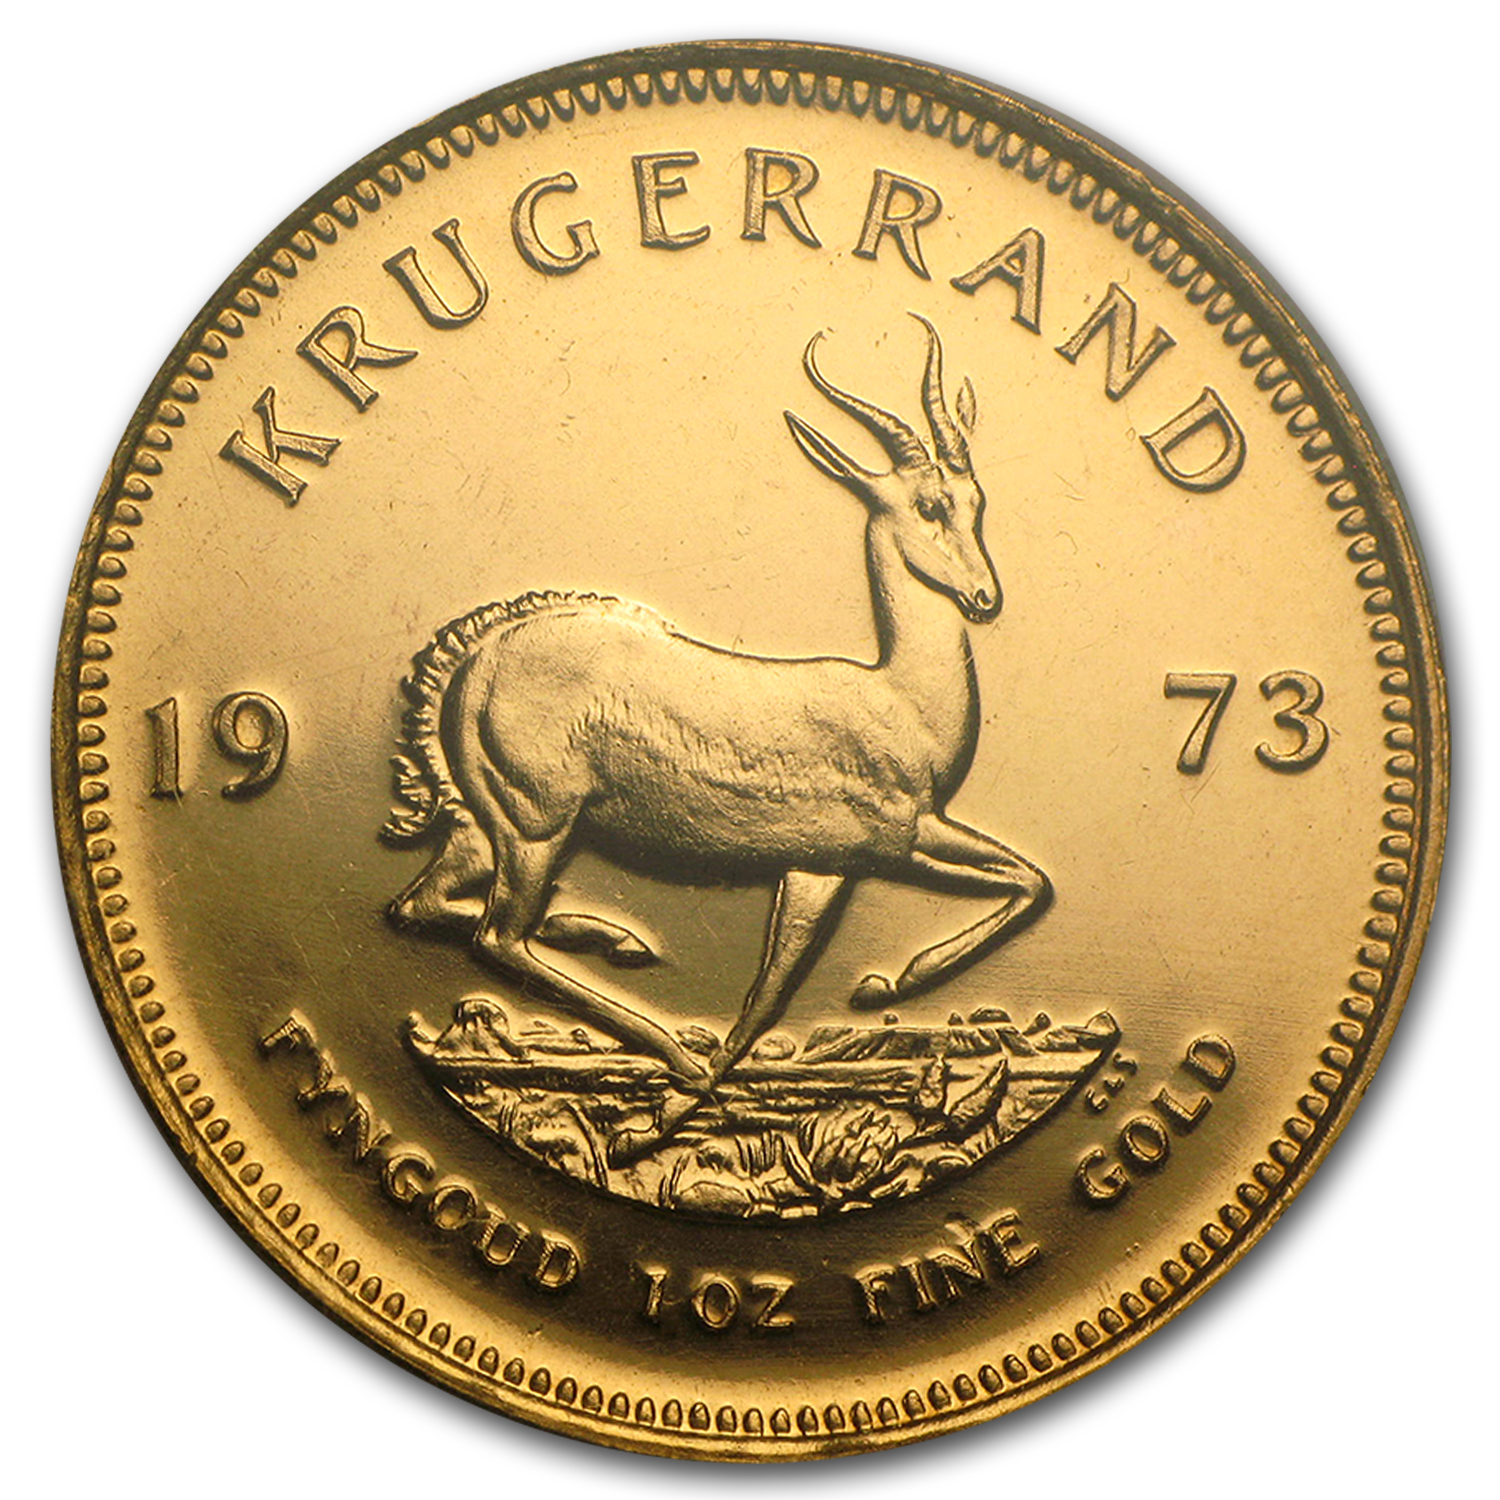 1973 South Africa 1 oz Proof Gold Krugerrand